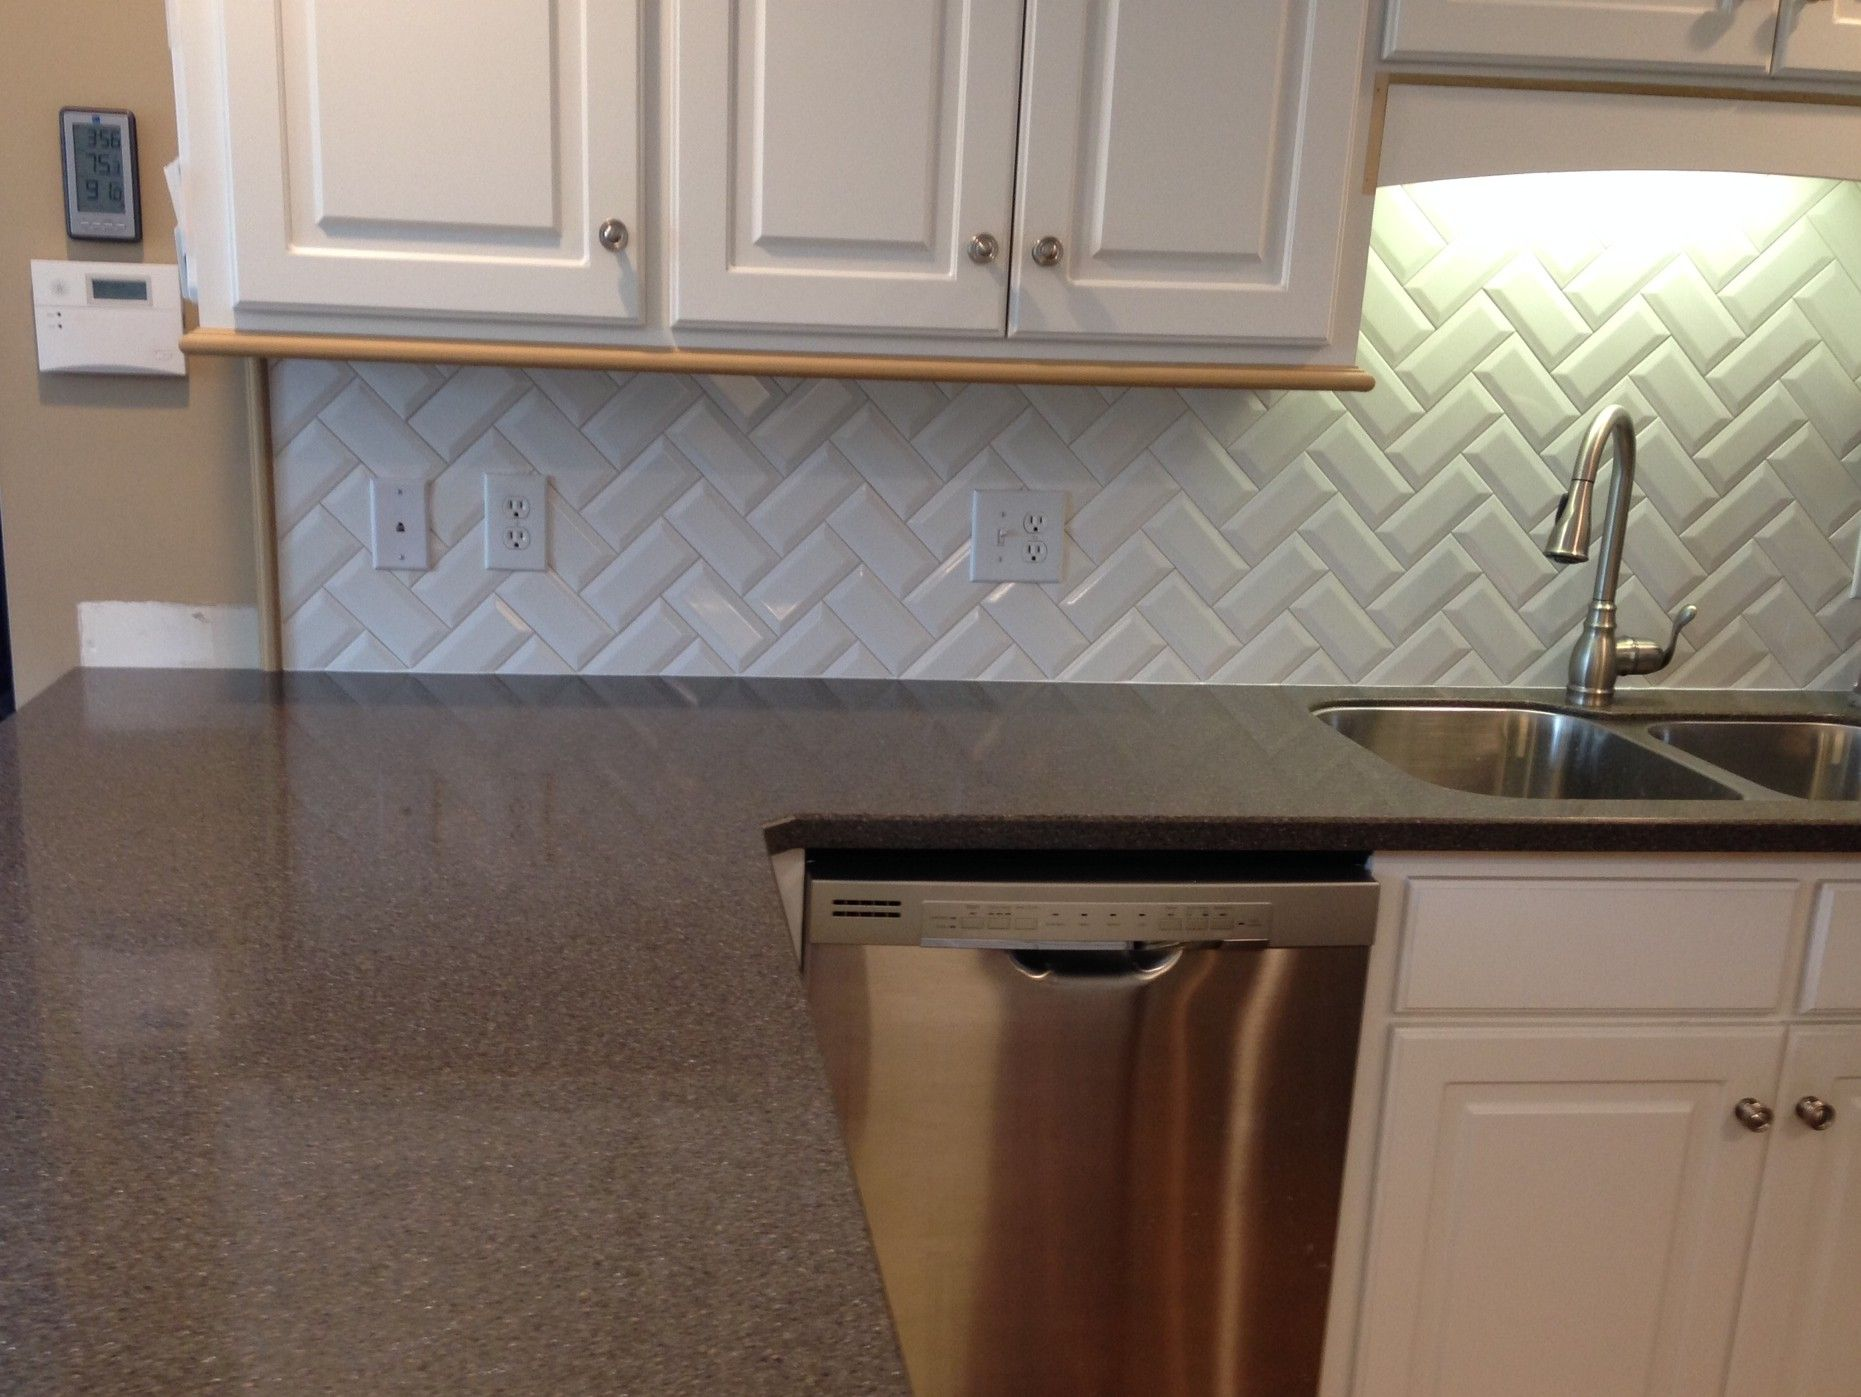 Classic Herringbone Design With Primus White 3x6 Beveled Subway